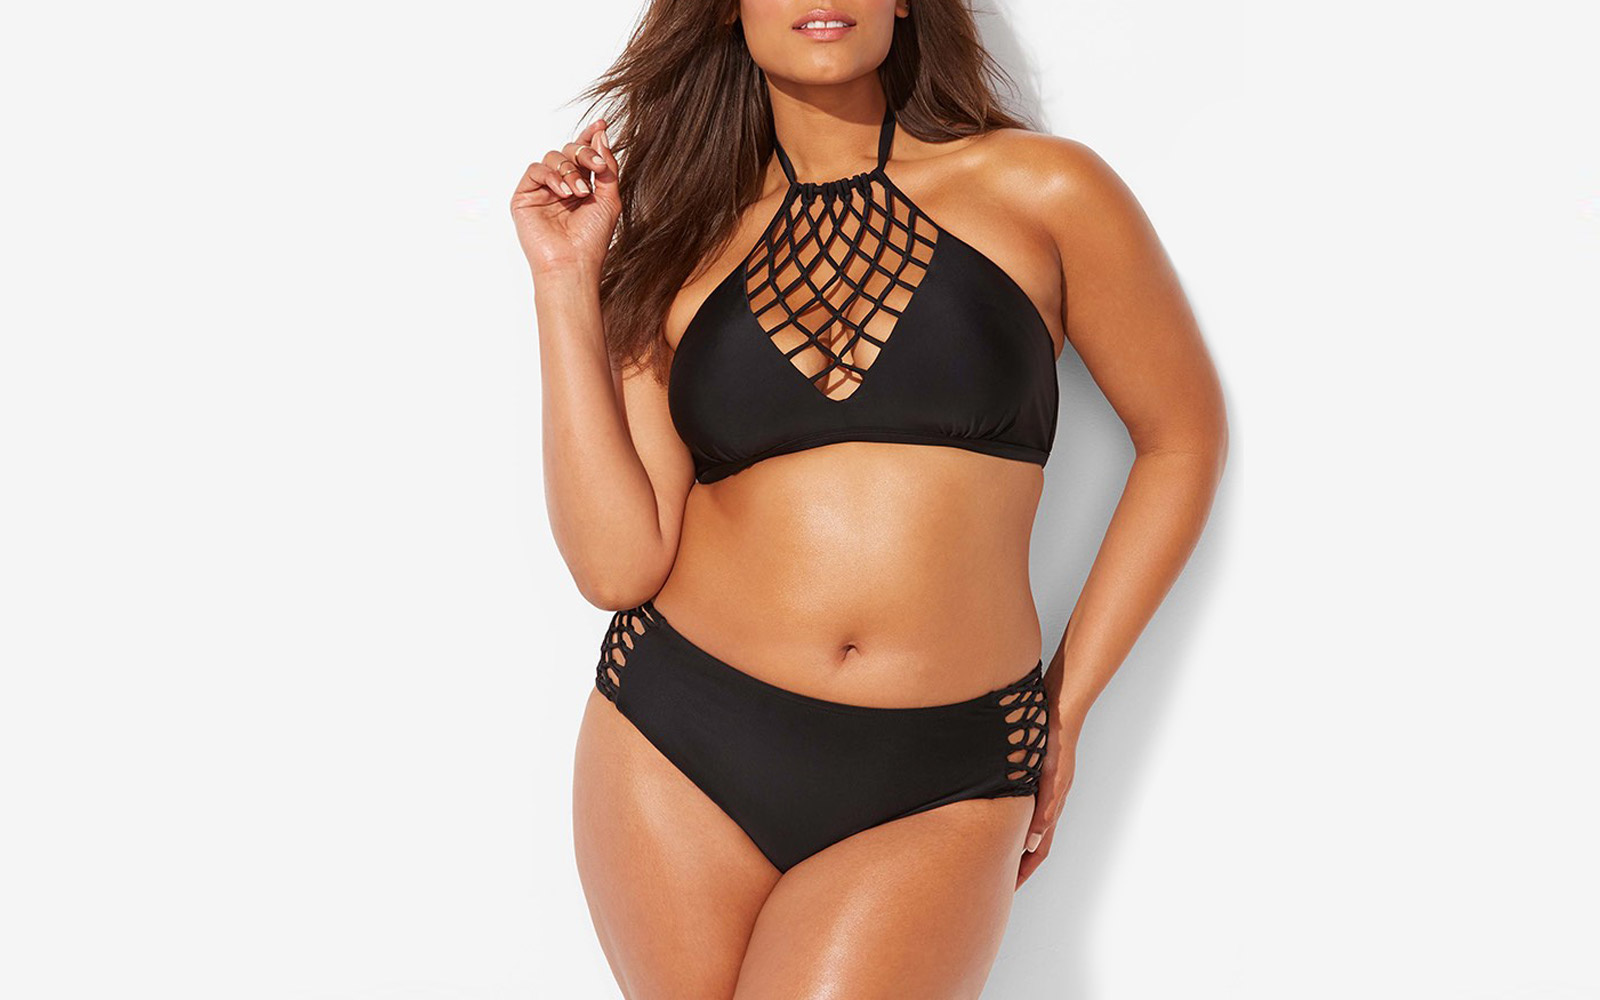 badebf60b0273 ashley graham plus size swimsuit